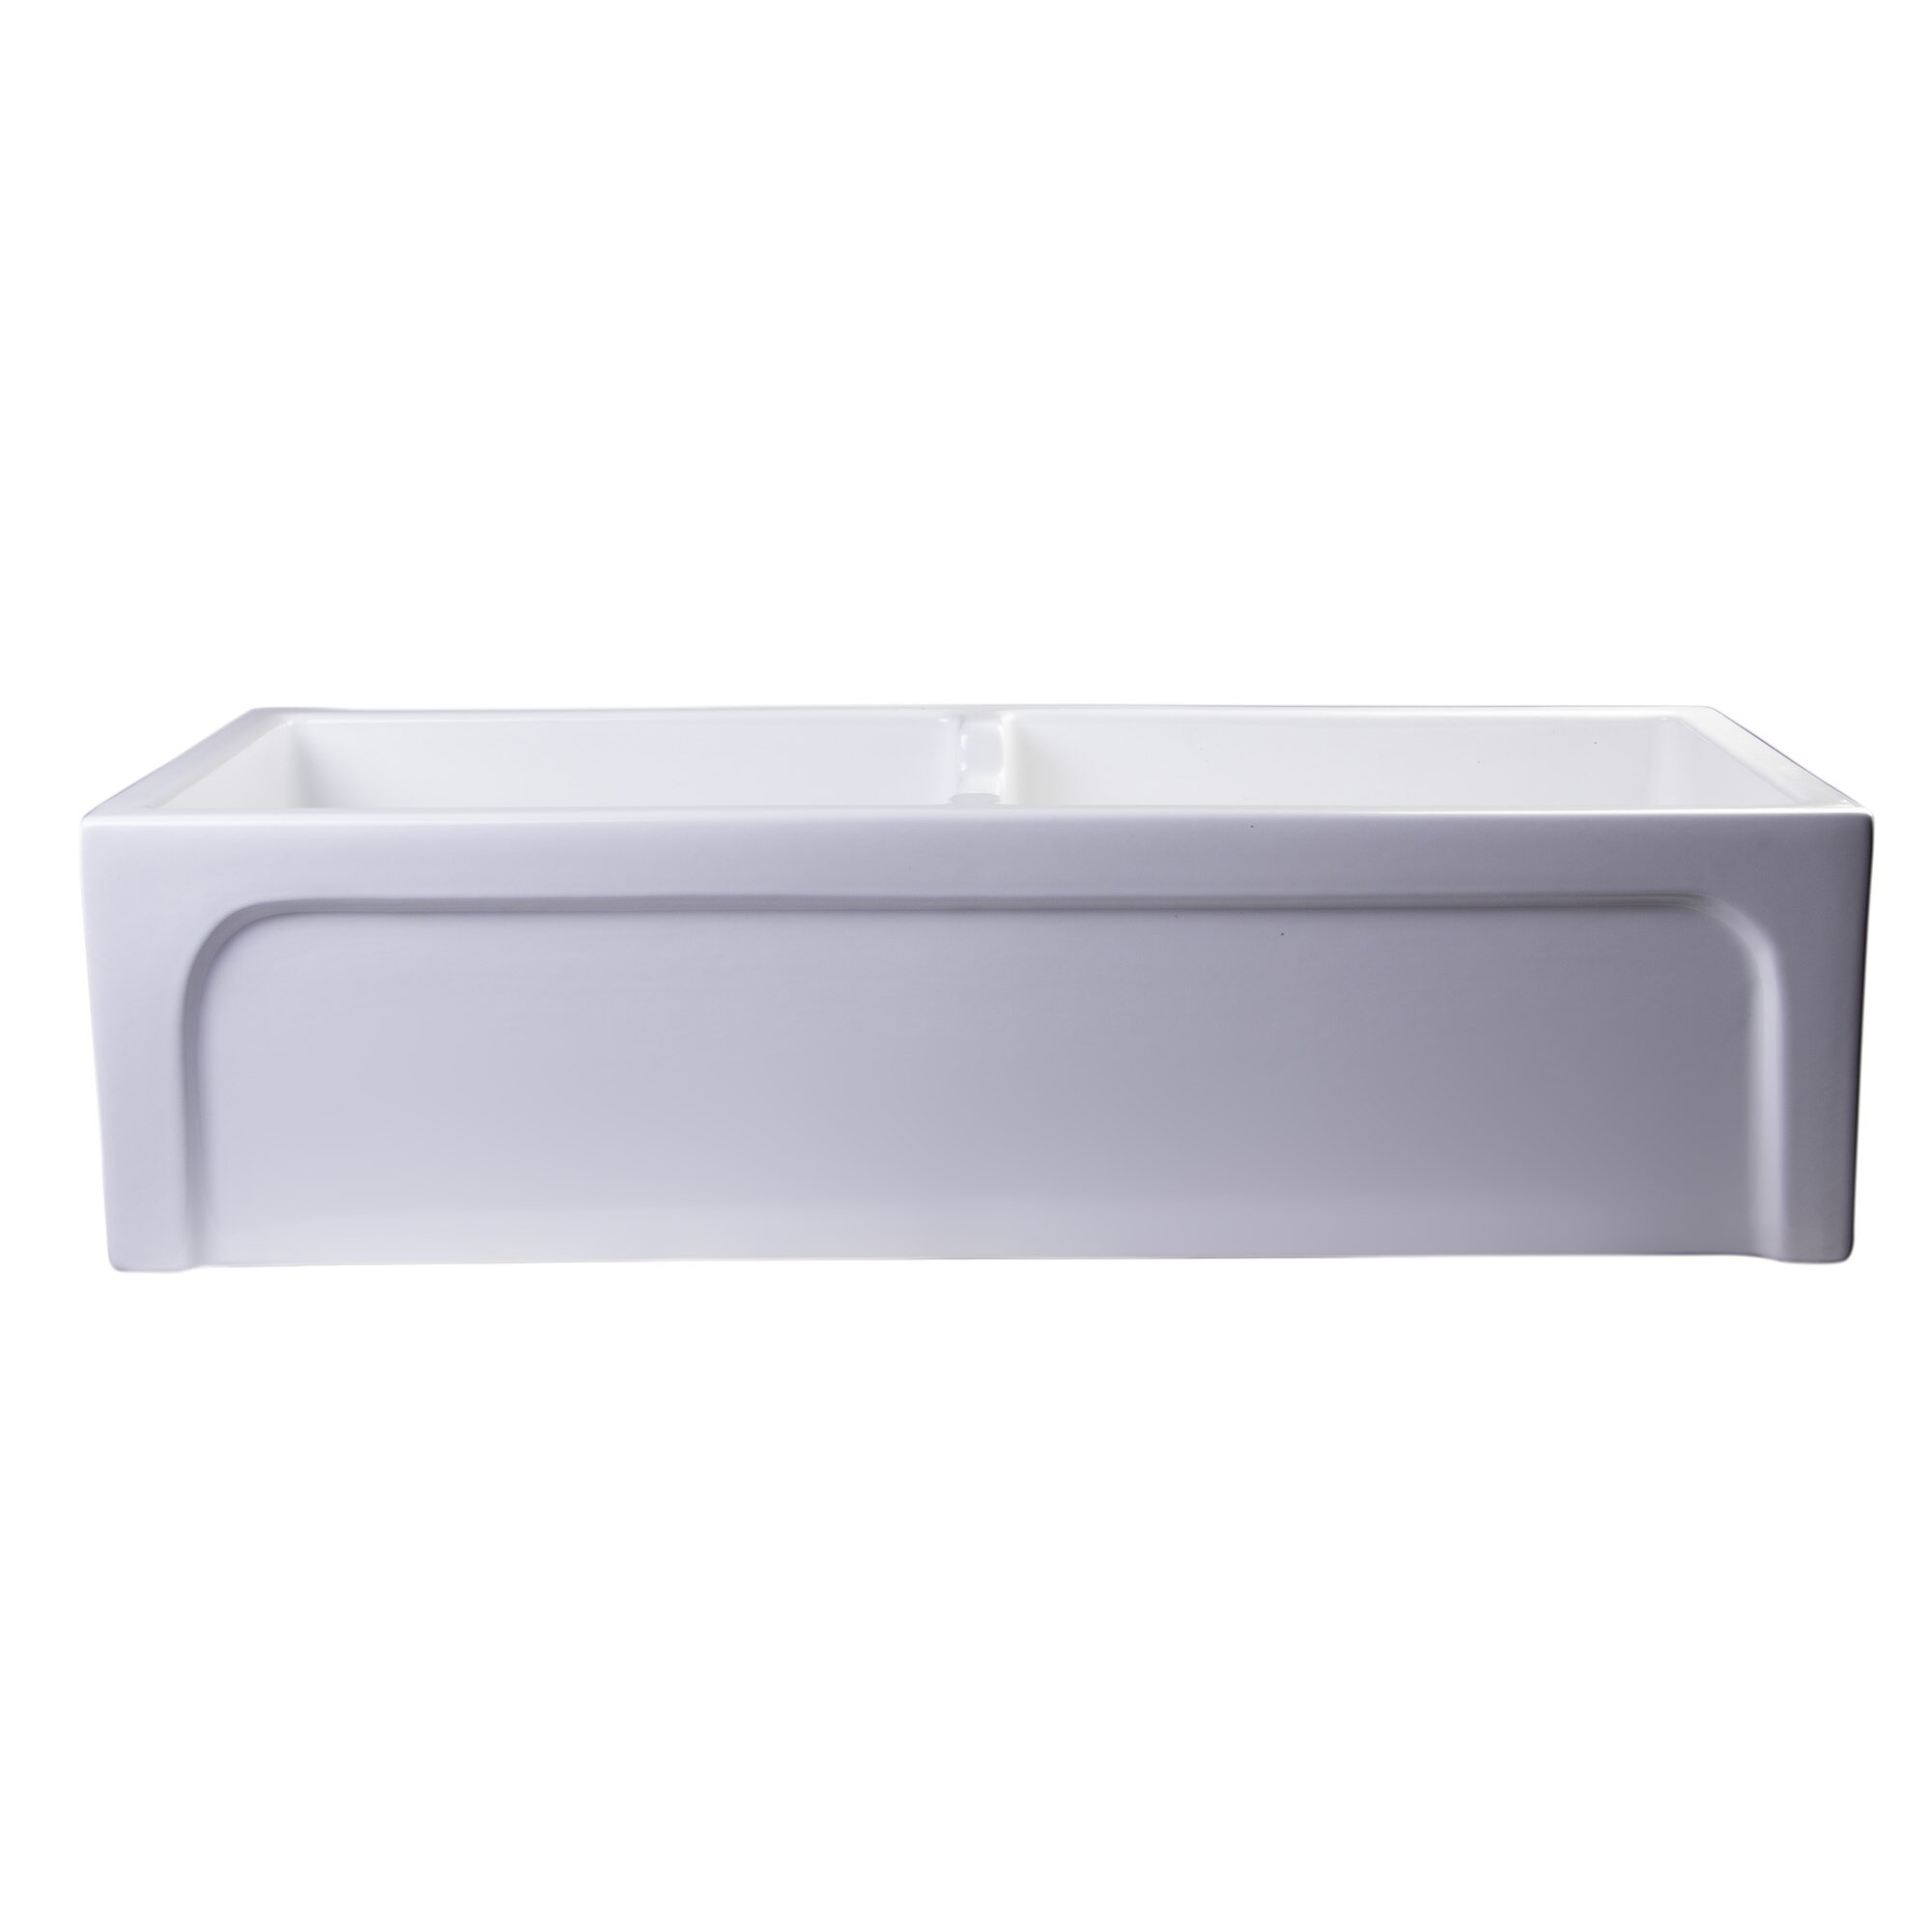 Farmhouse Sink Brands : ... Thick Wall Fireclay Double Bowl Farmhouse Kitchen Sink by Alfi Brand